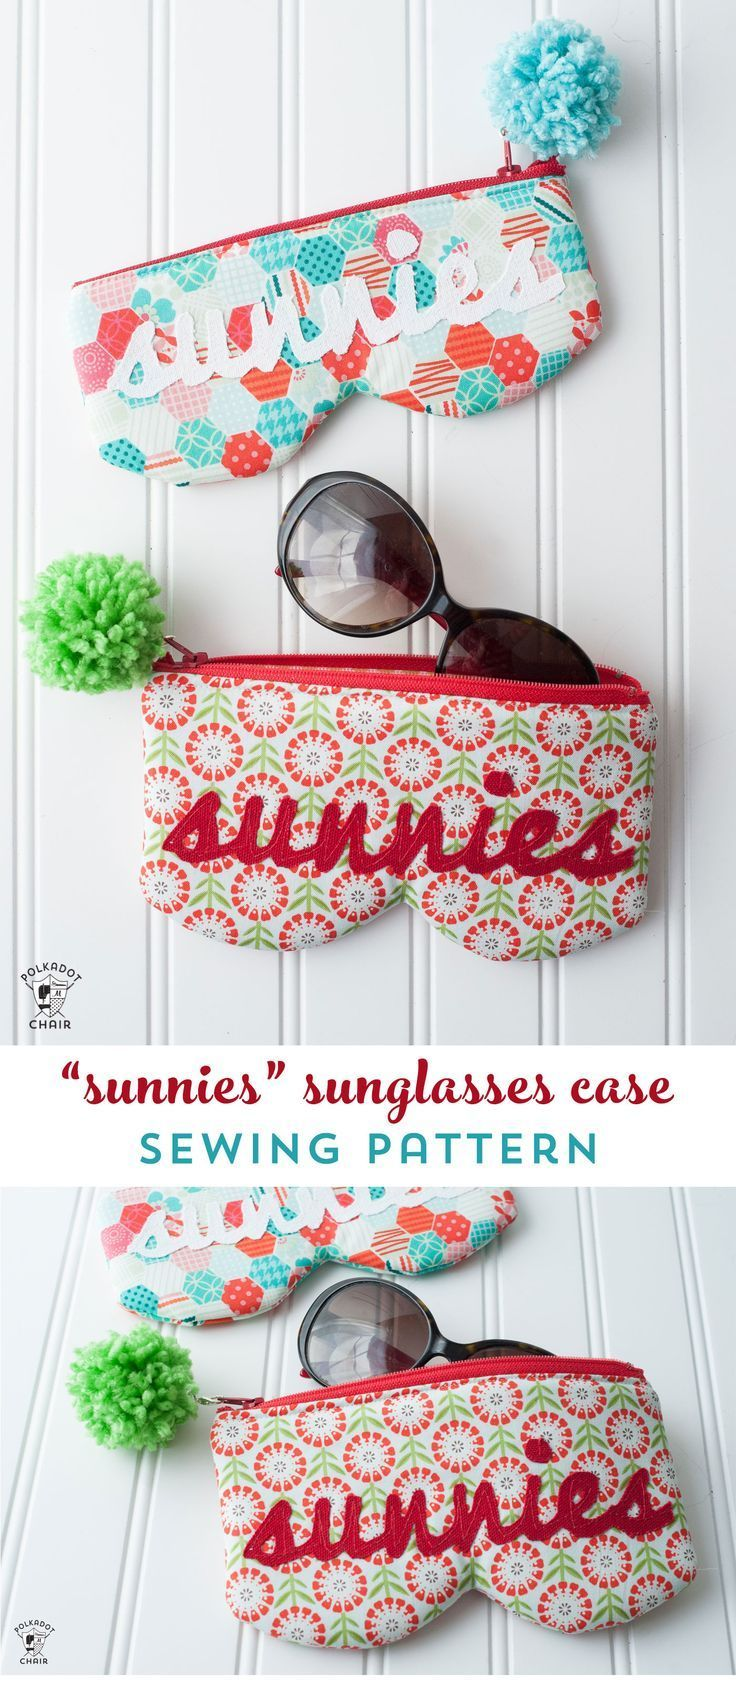 A free sewing pattern for a sunglasses case. How to sew a sunglasses case. #sewi...